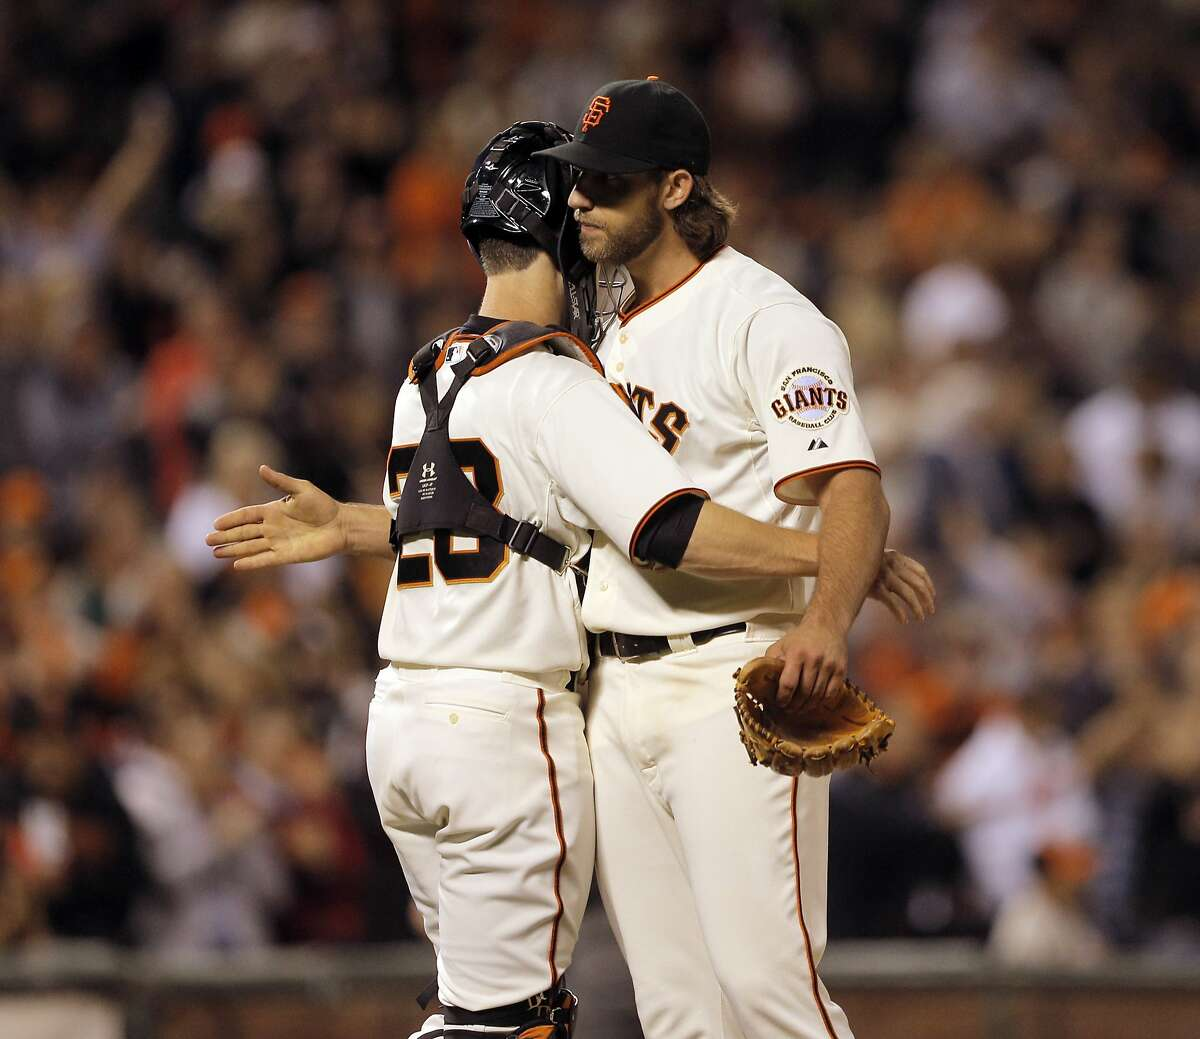 Madison Bumgarner gets a hug from catcher Buster Posey after the game and Bumgarner threw seven perfect innings as the Giants played the Colorado Rockies at AT&T Park in San Francisco, Calilf., on Tuesday, August 26, 2014.